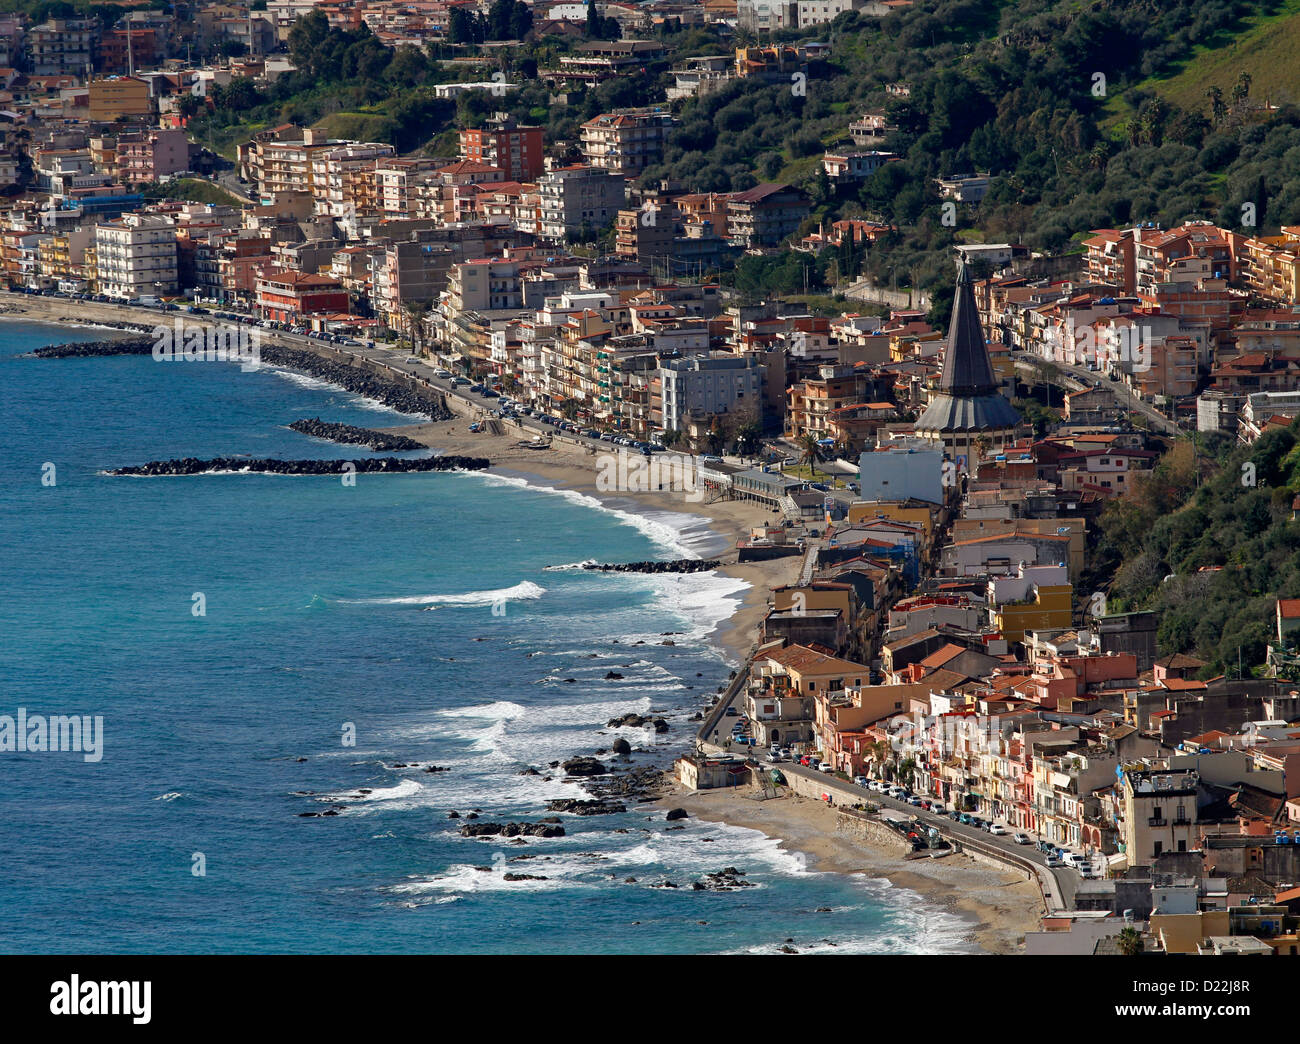 Giardini Naxos viewed from Taormina, Sicily, Italy - Stock Image